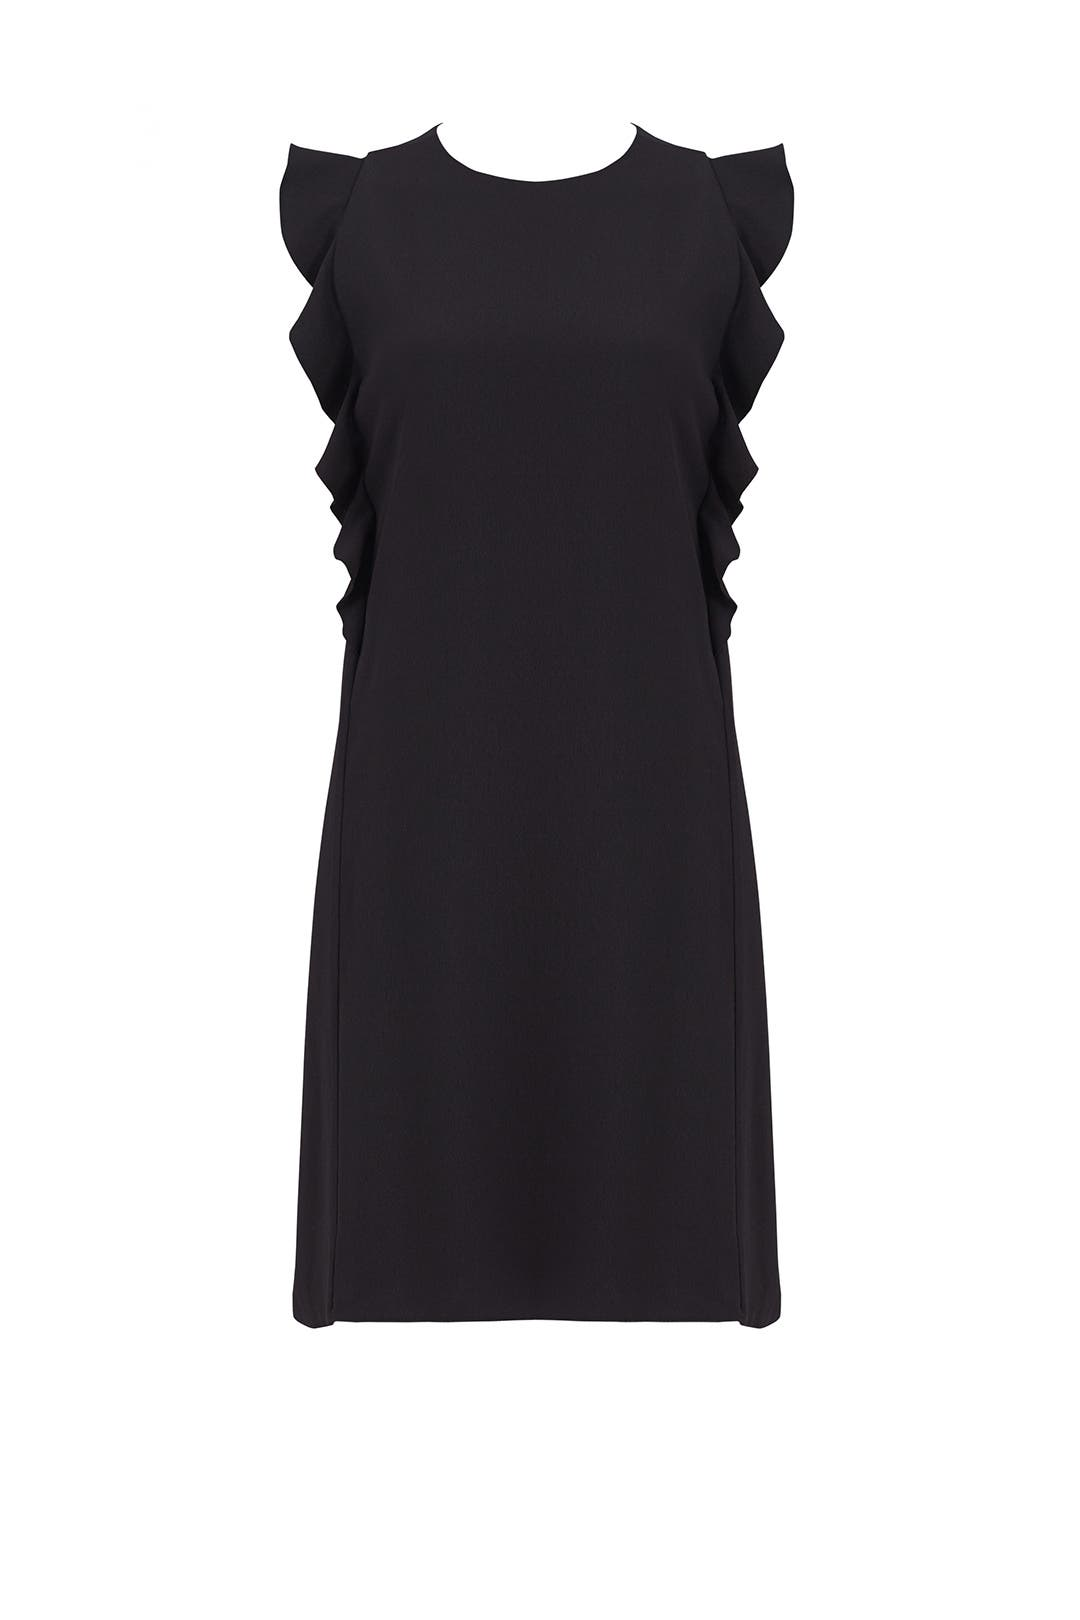 Black Ruffle Crepe Dress by Carven for $85 | Rent the Runway